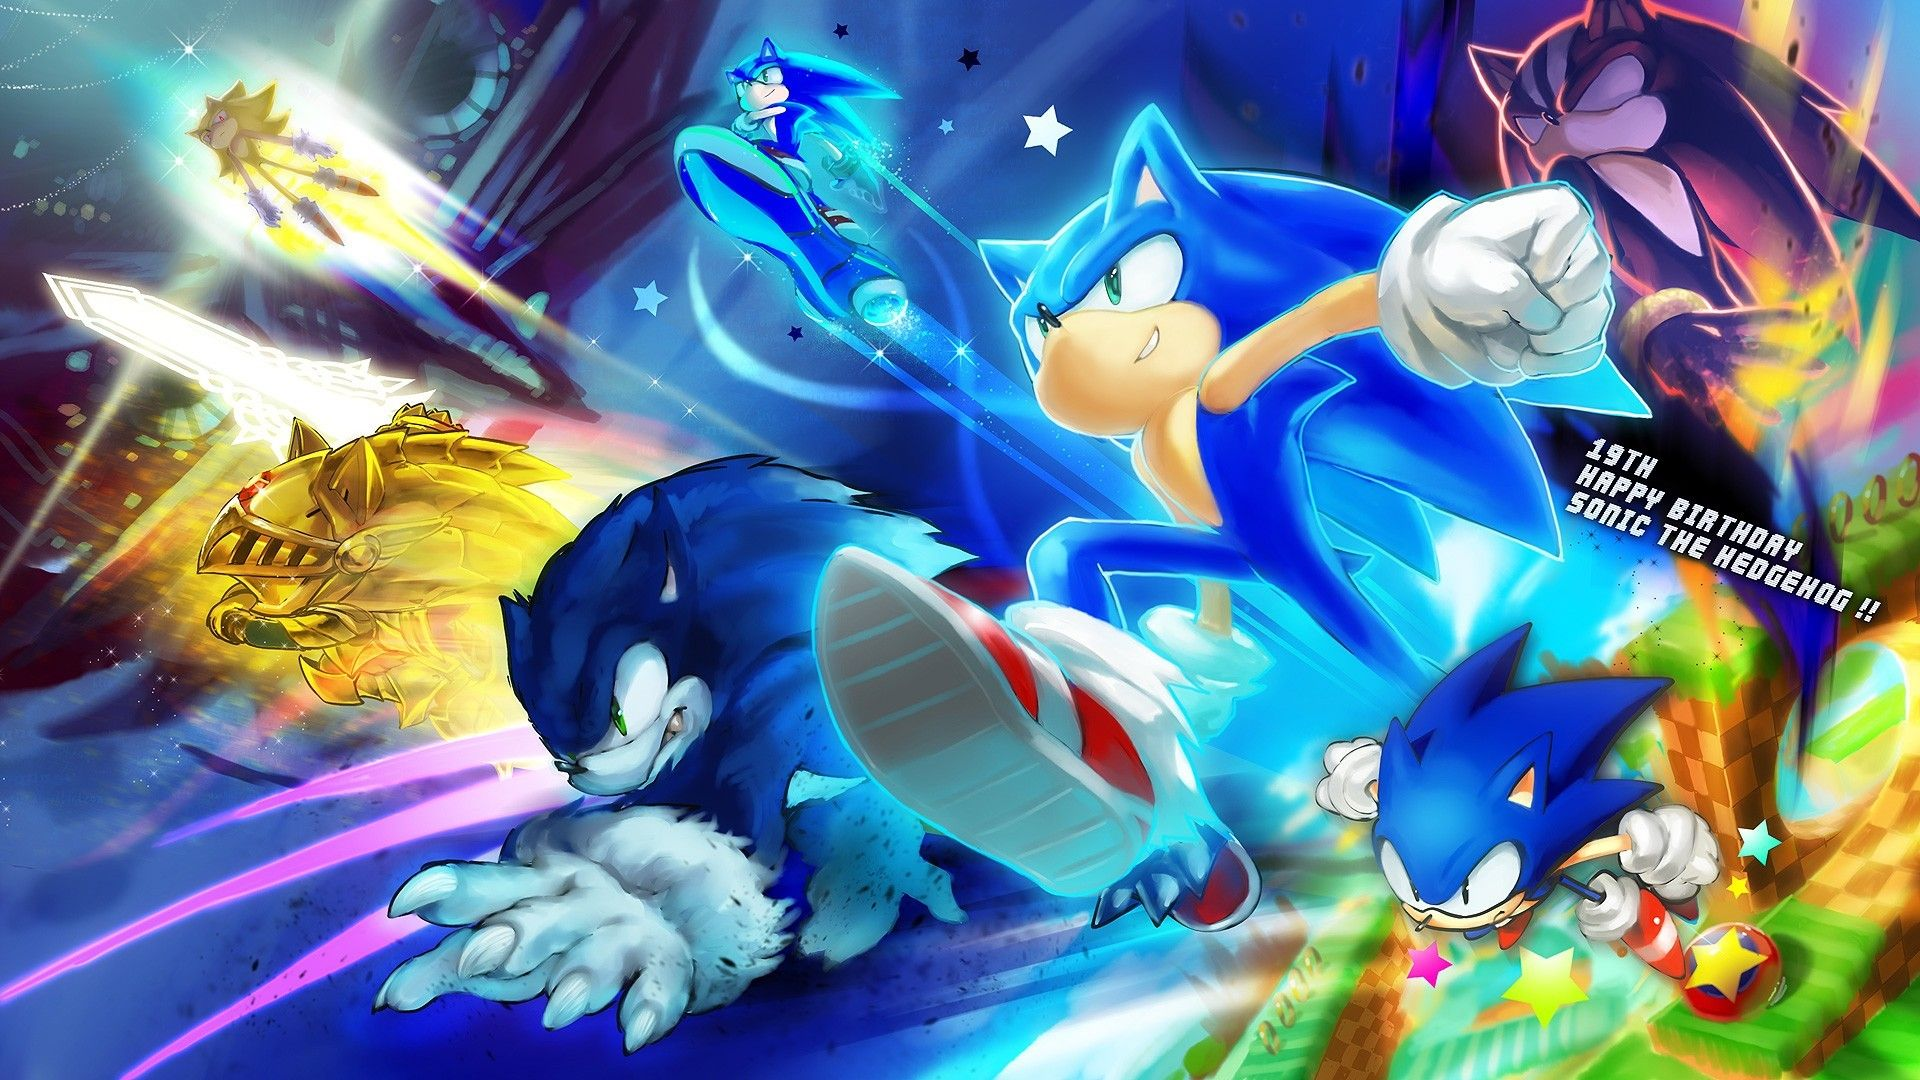 Sonic The Hedgehog Wallpapers Top Free Sonic The Hedgehog